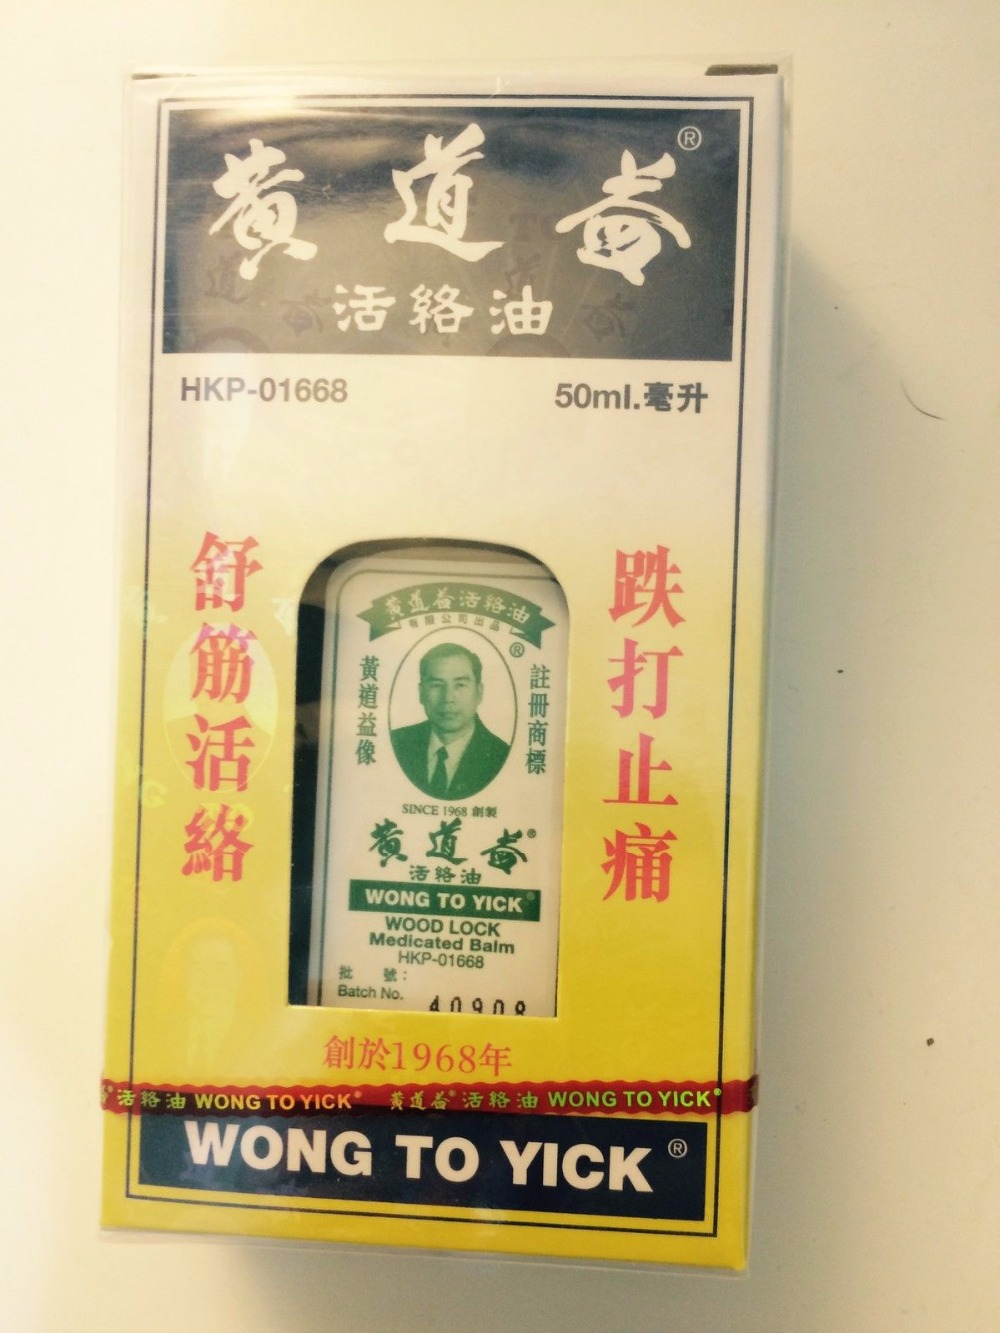 Wong To Yick Wood Lock Medicated Balm Oil Pain Relief Aches Medical Woodlock soft laser healthy natural product pain relief system home lasers